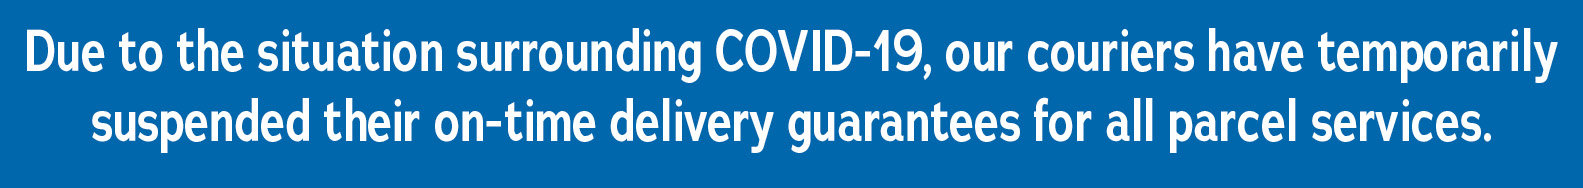 Due to the situation surrounding COVID-19, our couriers have temporarily suspended their on-time delivery guarantees for all parcel services.